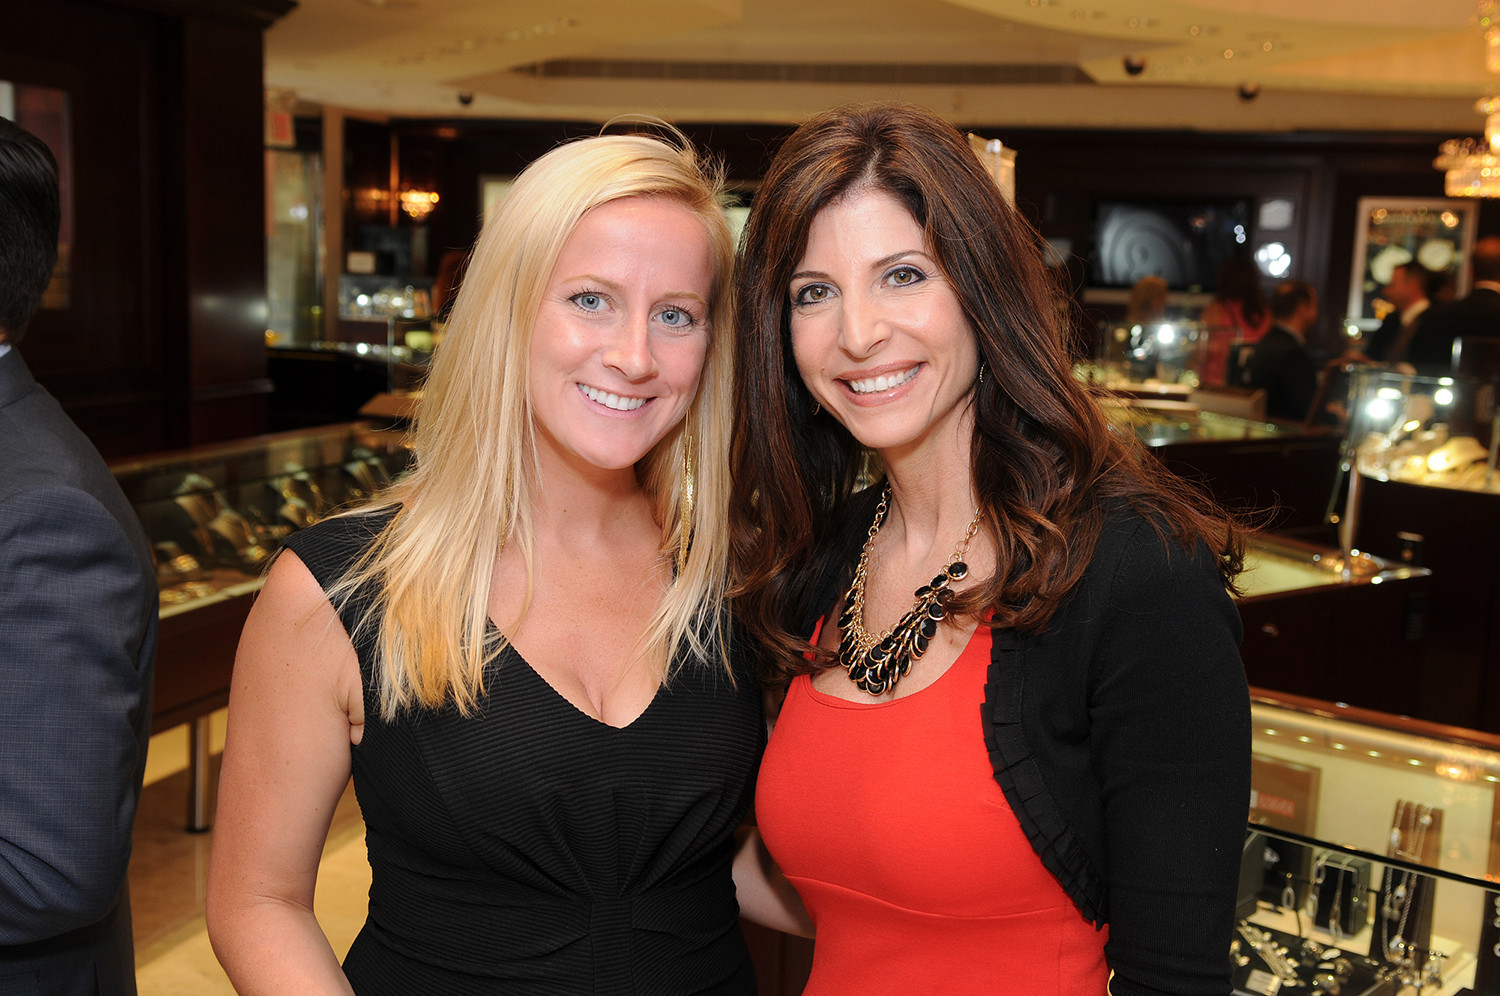 Society Scene photos - Lauren Rashid from MSH Group and Kim Cagiano from SunTrust